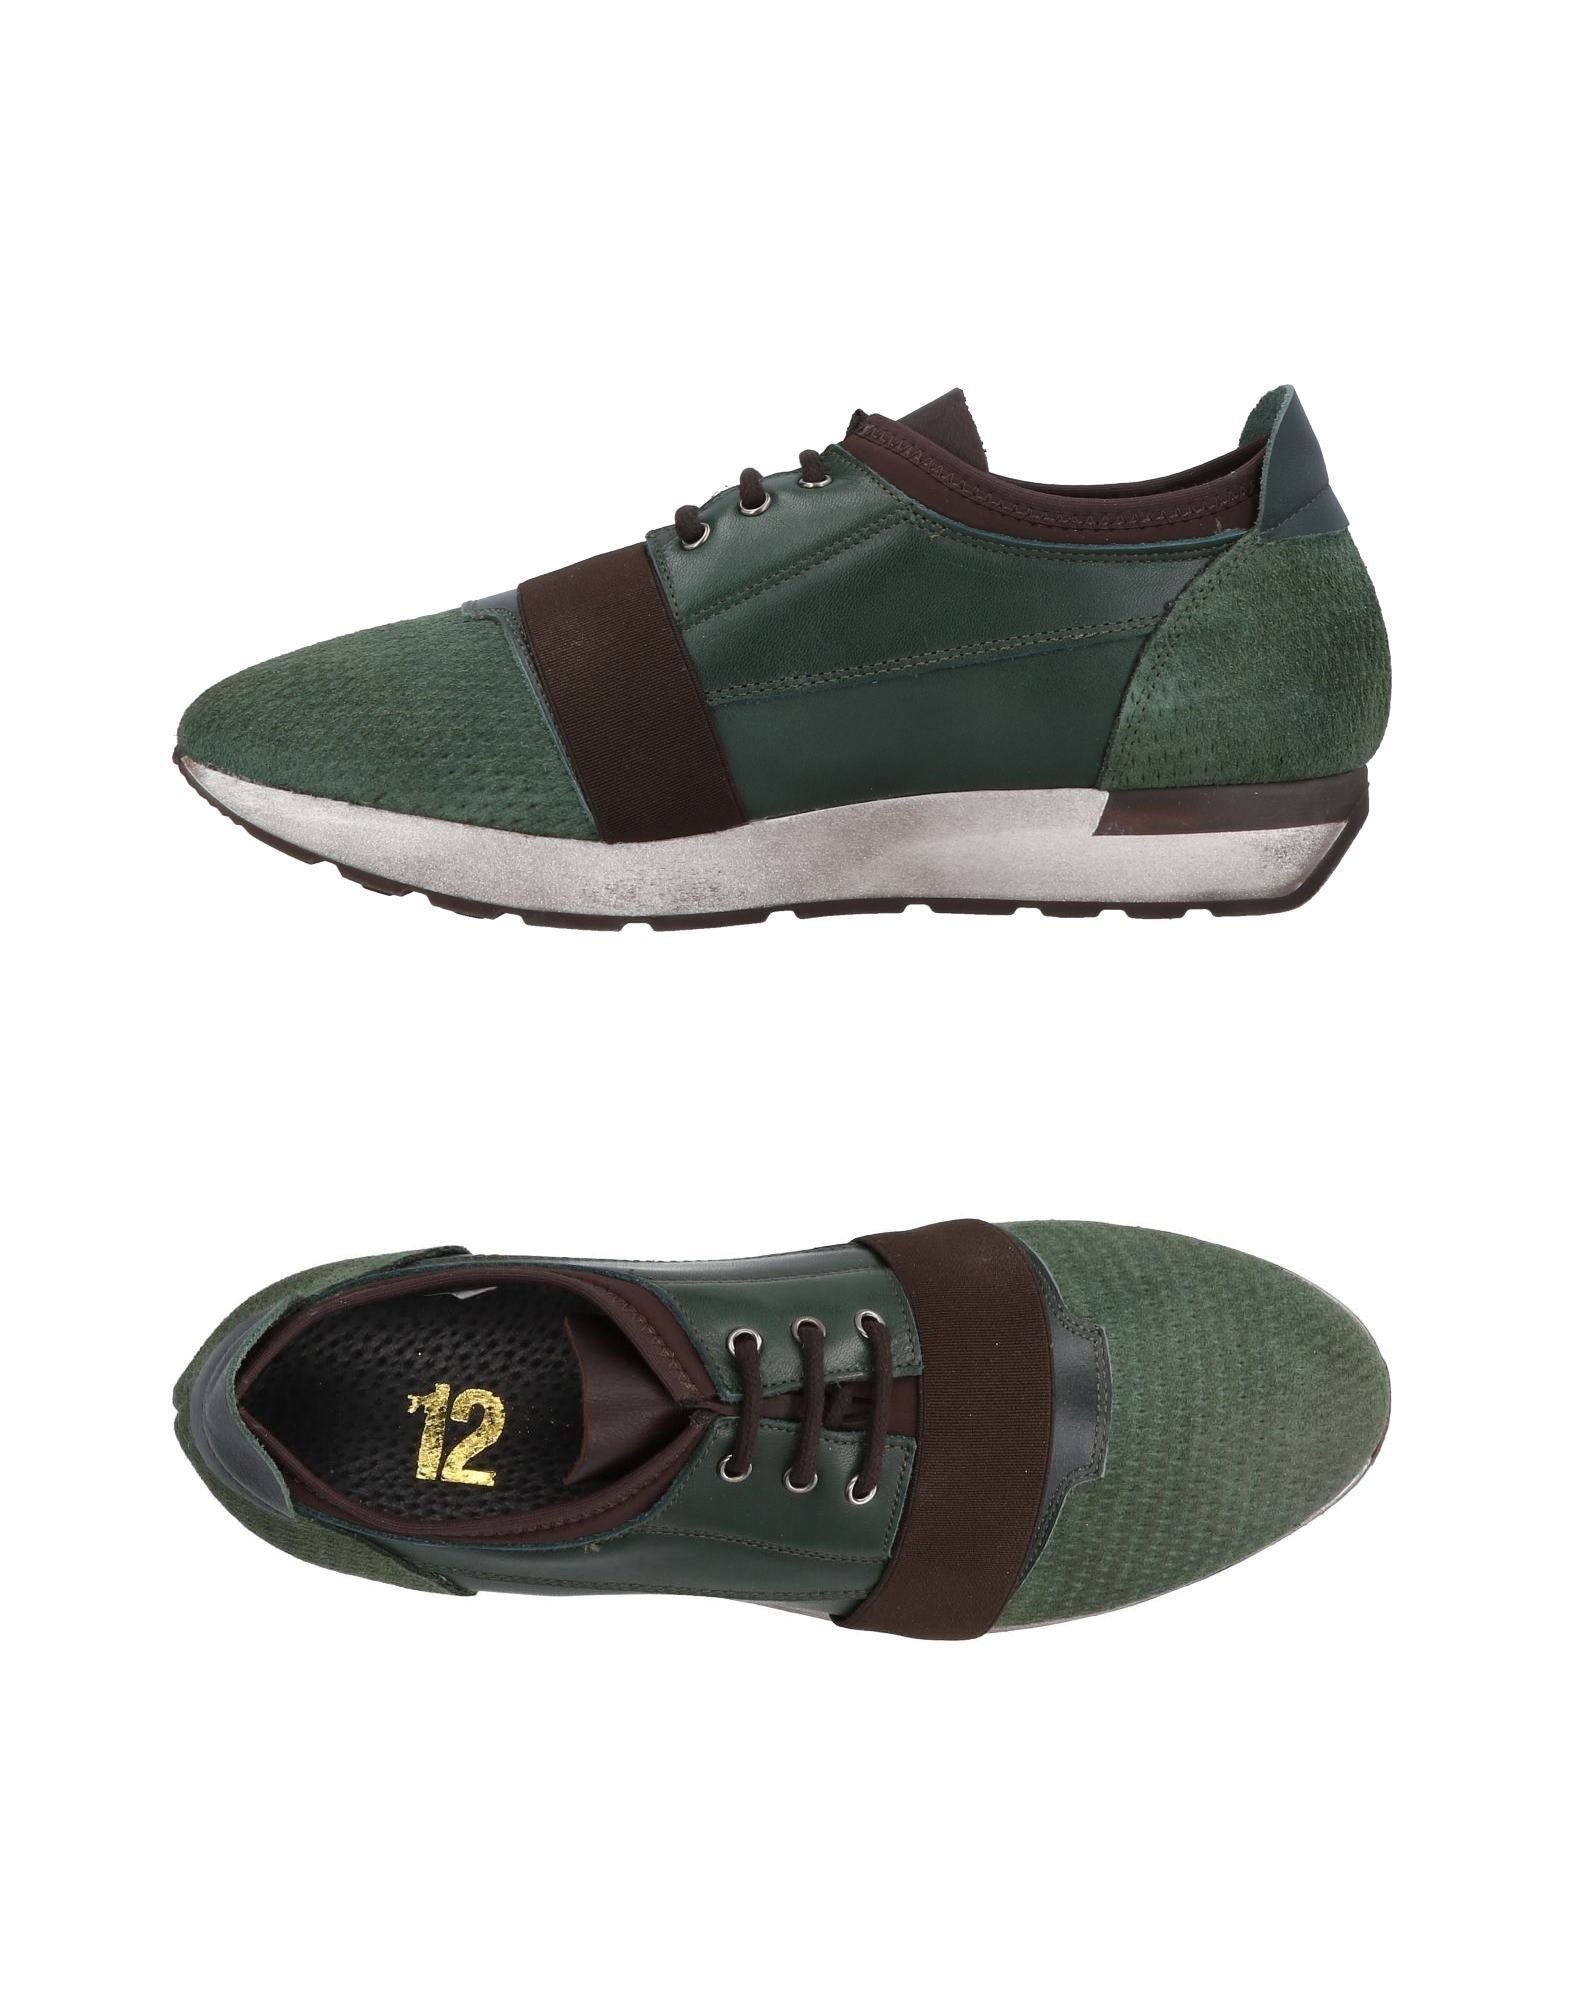 Tsd12 Sneakers Sneakers - Women Tsd12 Sneakers Tsd12 online on  Canada - 11454015JH 819961